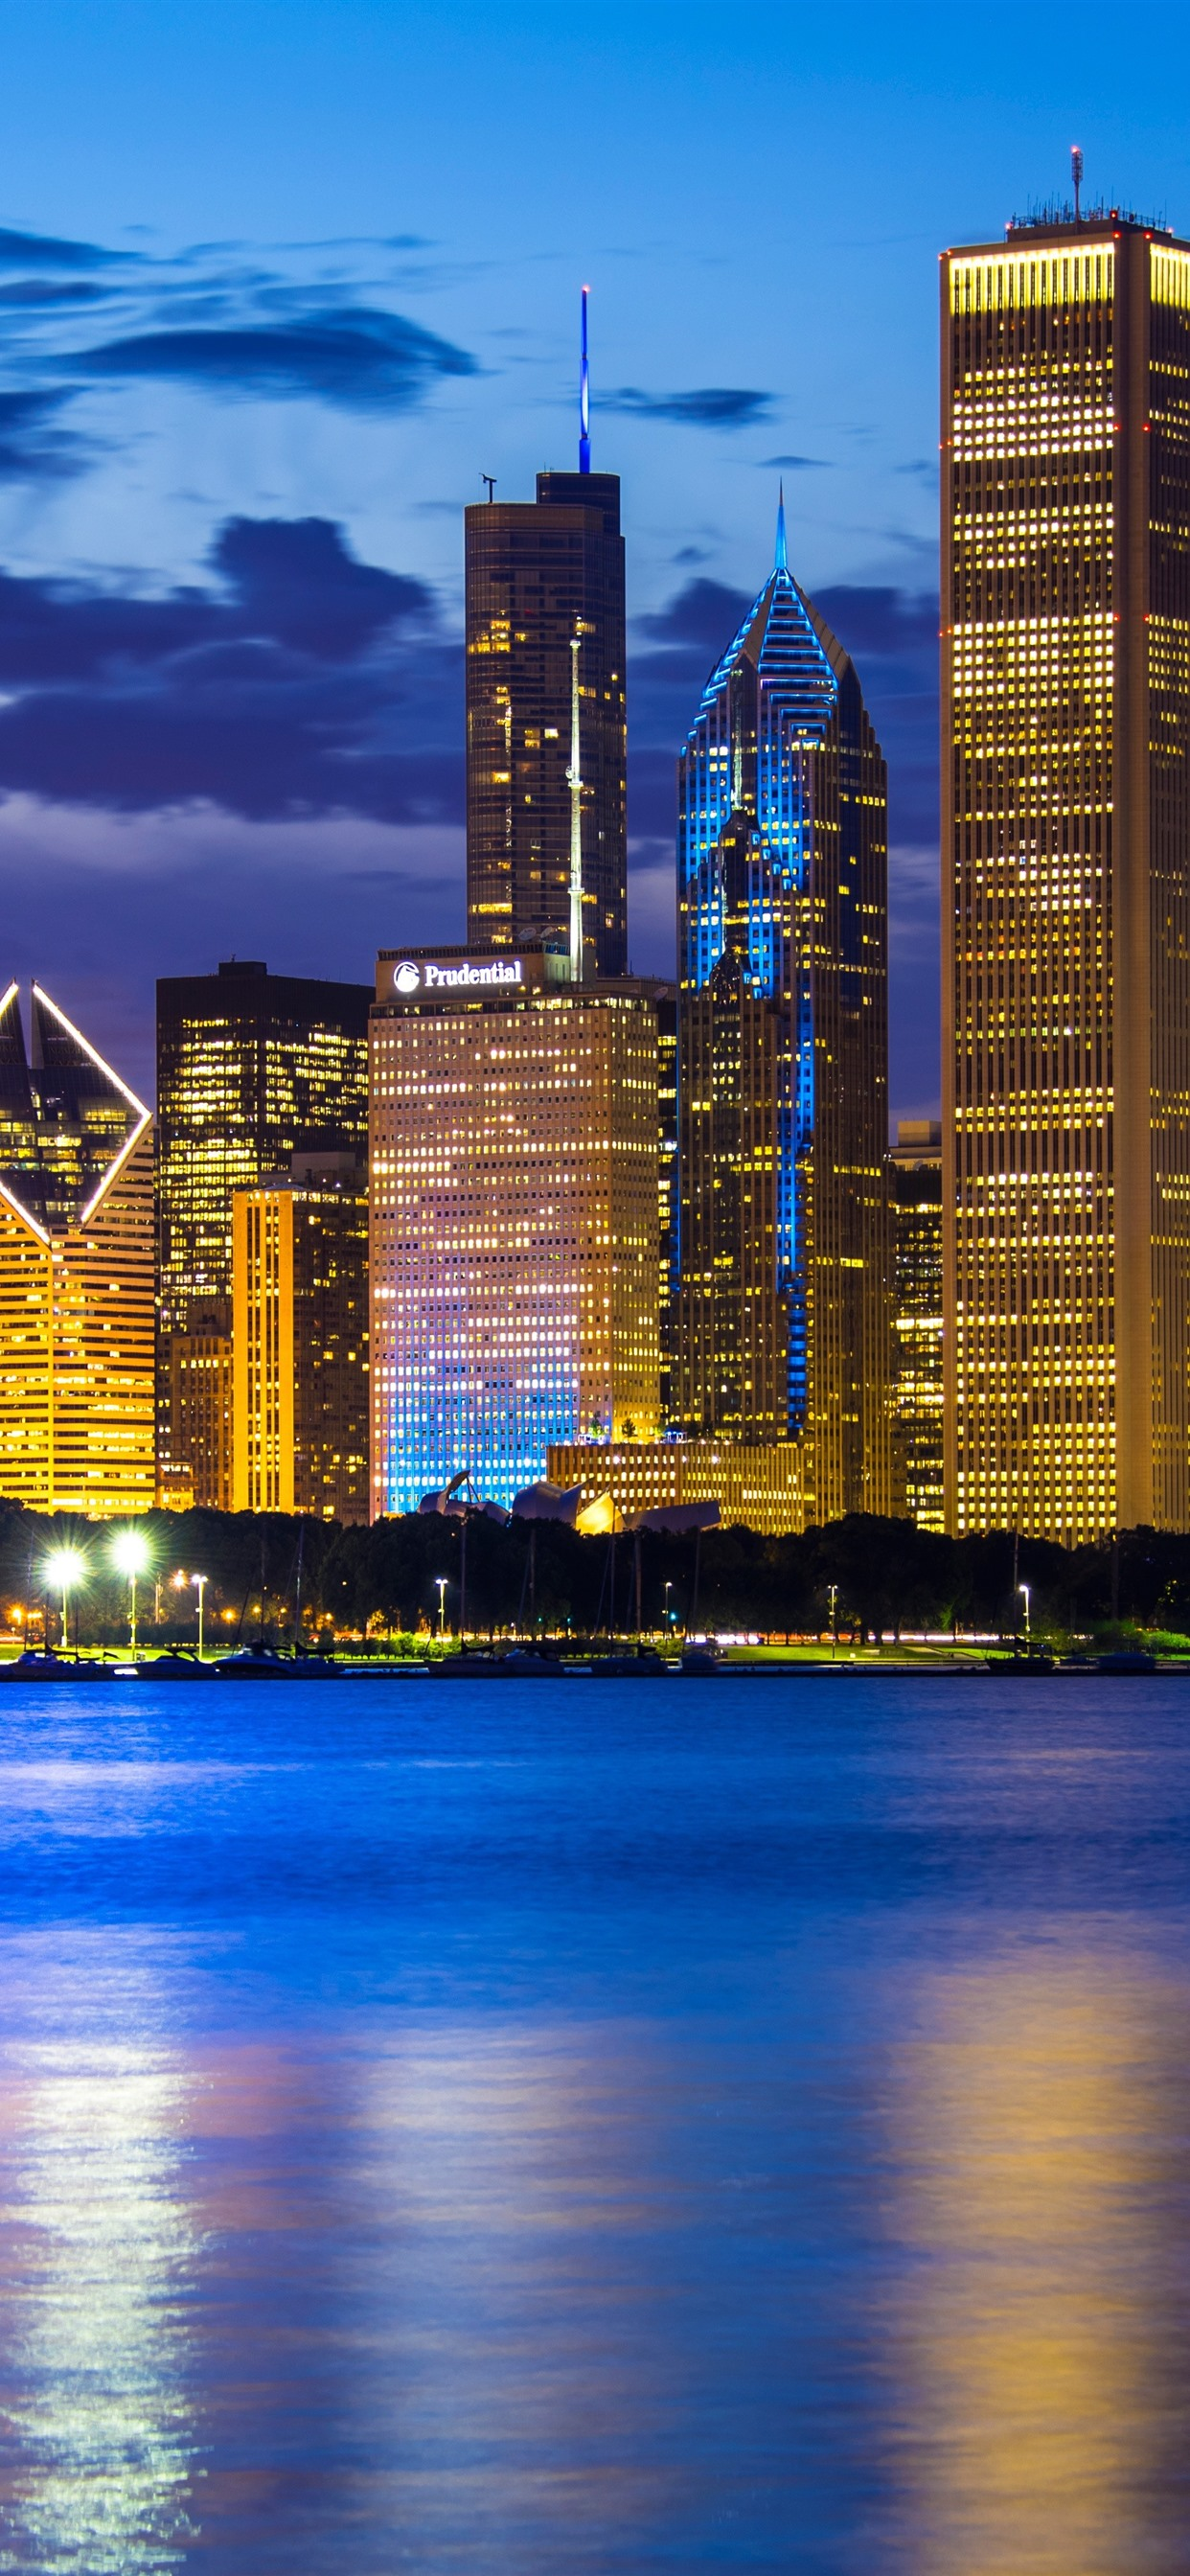 Wallpaper City At Night Chicago Illinois Usa Skyscrapers Lake Michigan Lights 5120x2880 Uhd 5k Picture Image